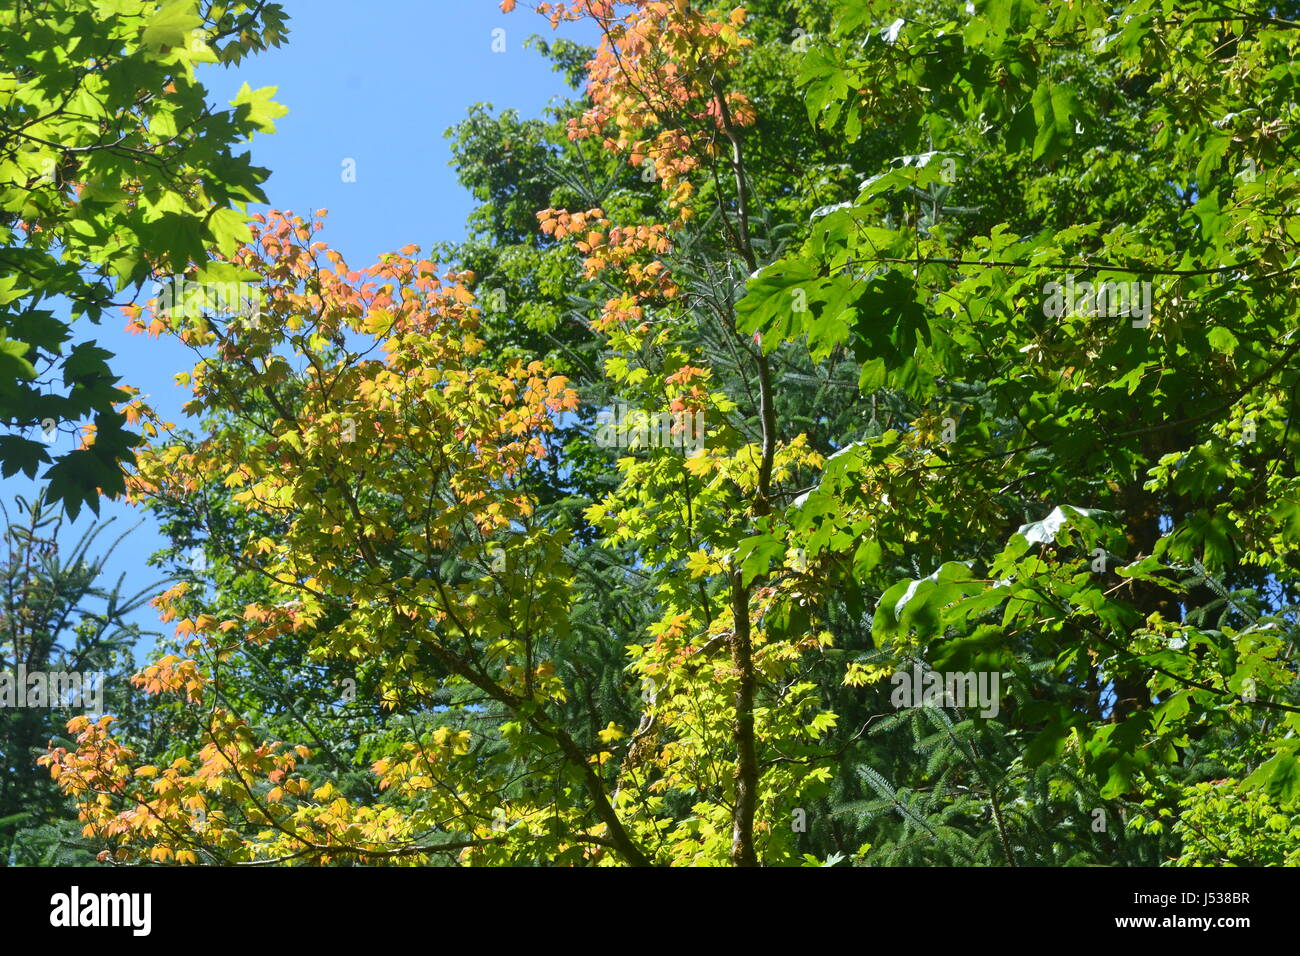 Vine Maple changing color Stock Photo: 140828683 - Alamy